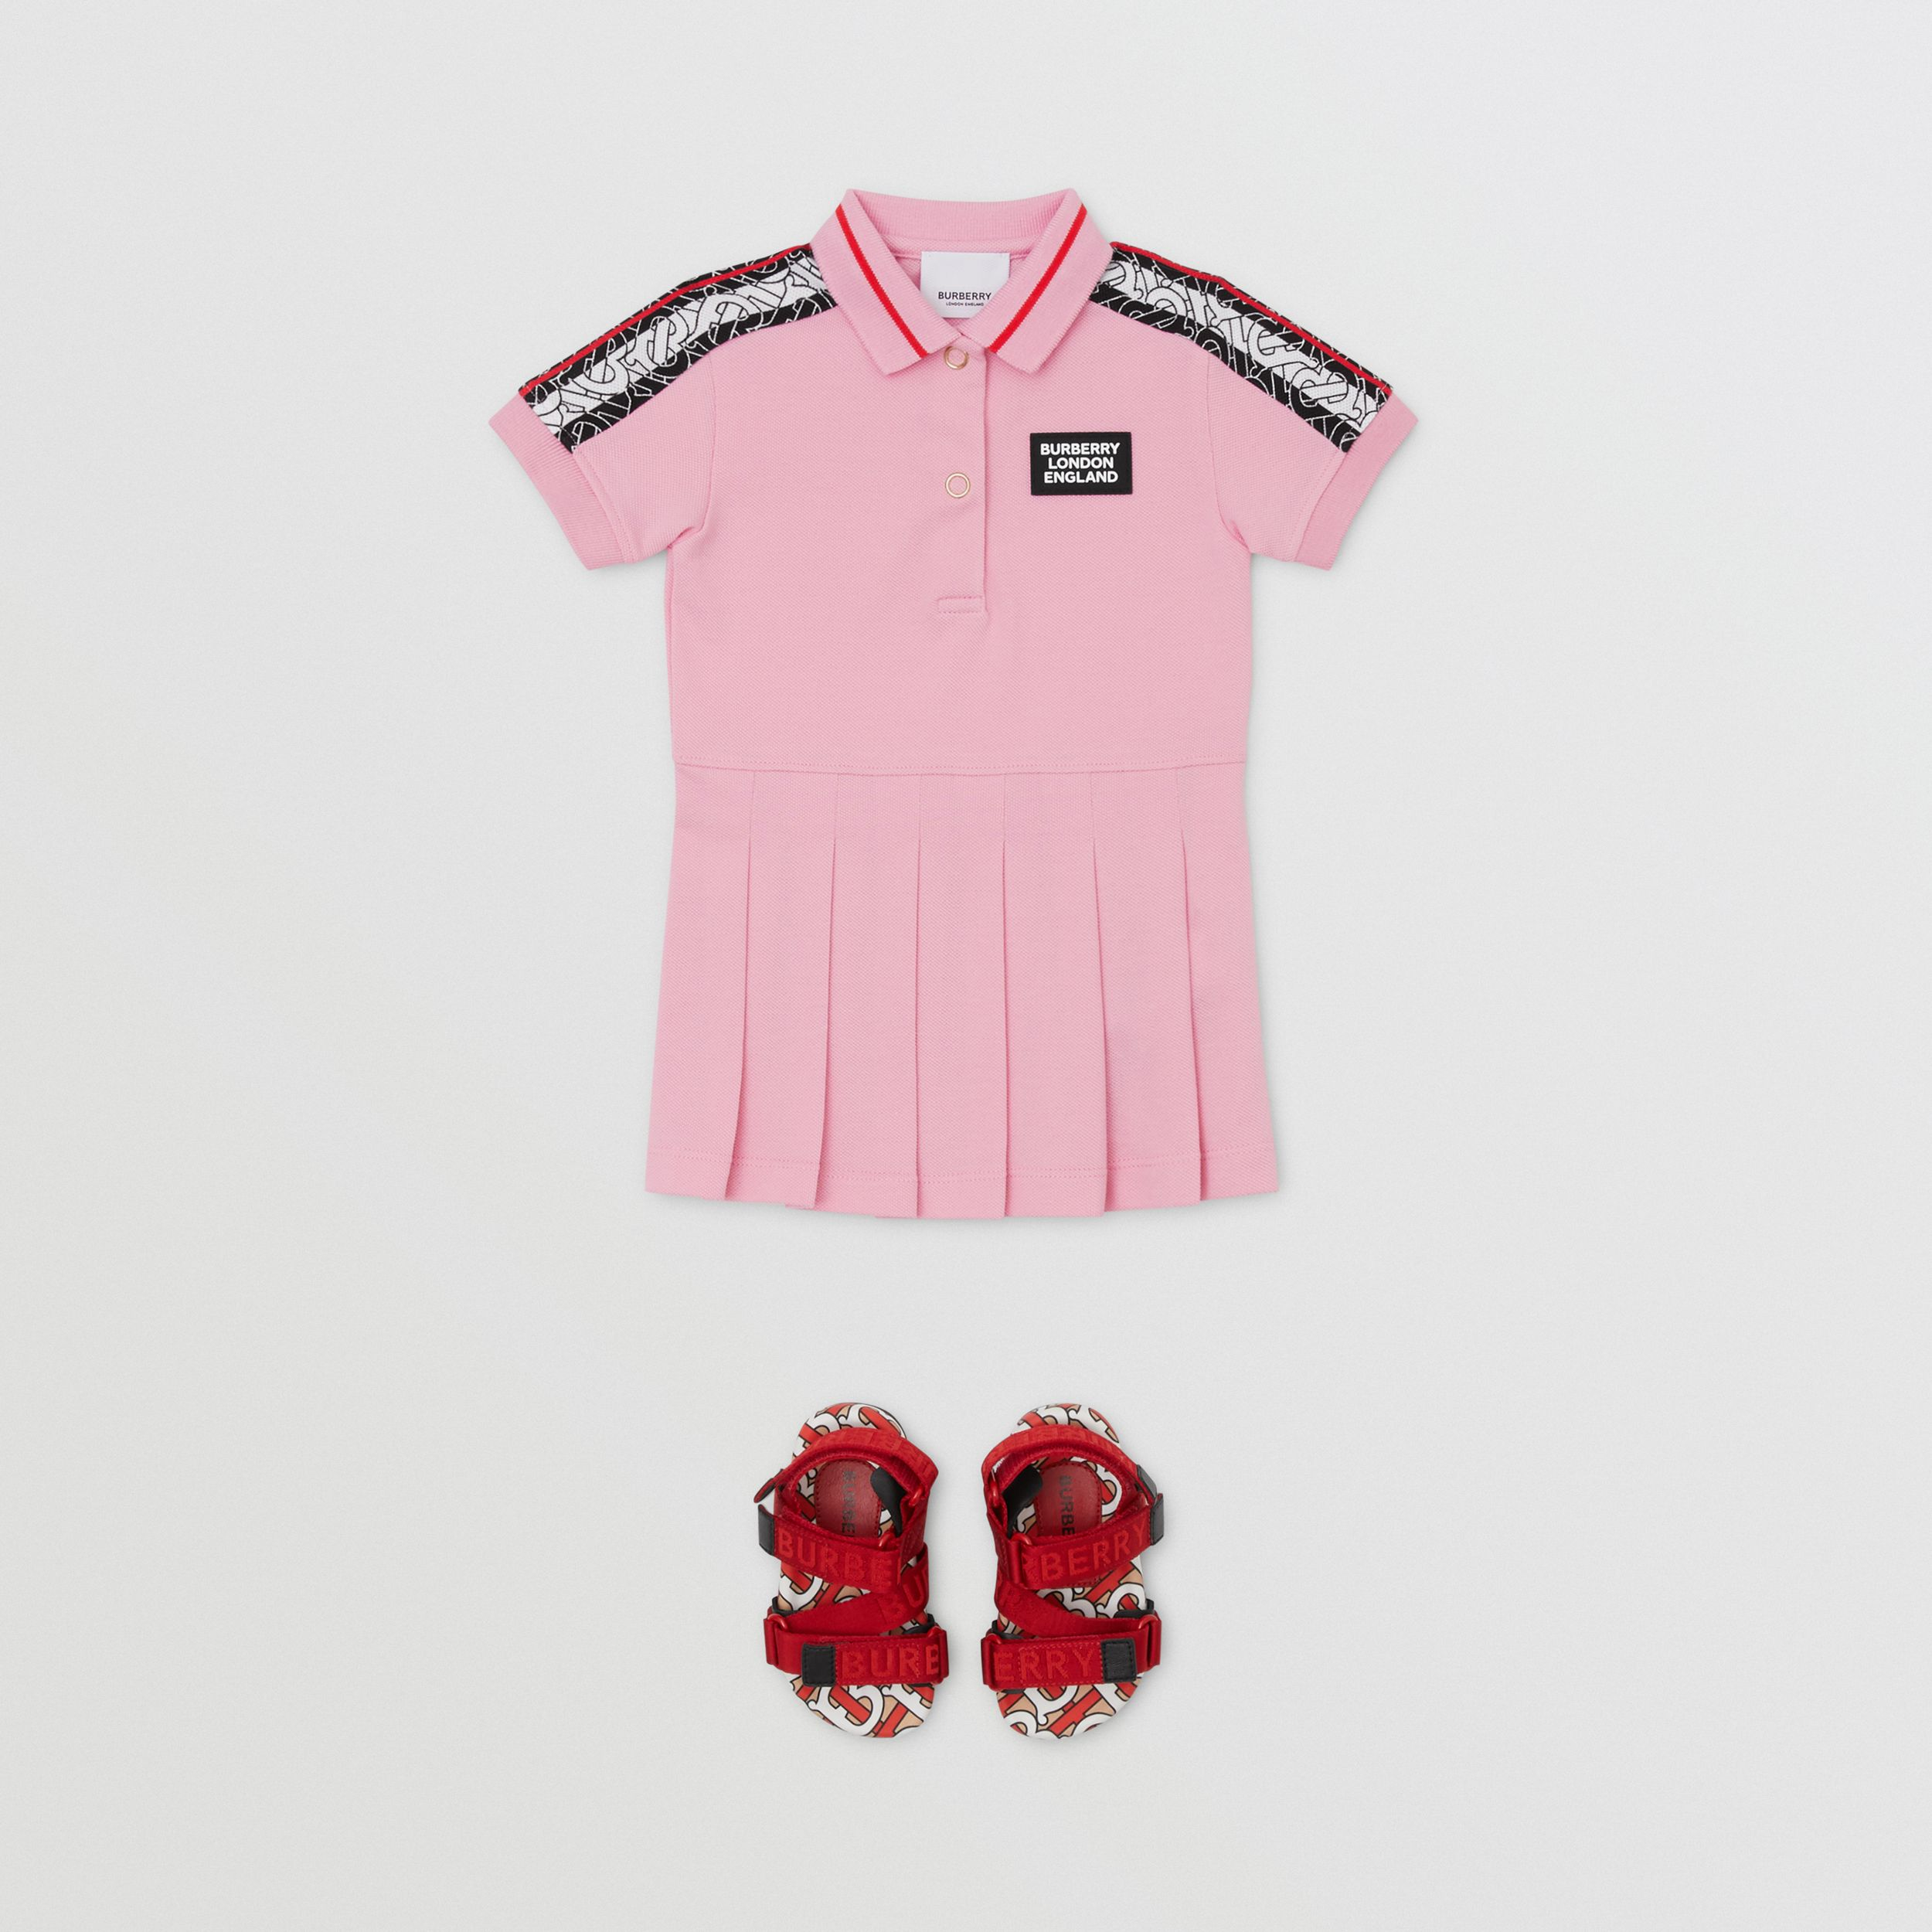 Monogram Stripe Print Cotton Piqué Polo Shirt Dress in Candy Pink - Children | Burberry - 3